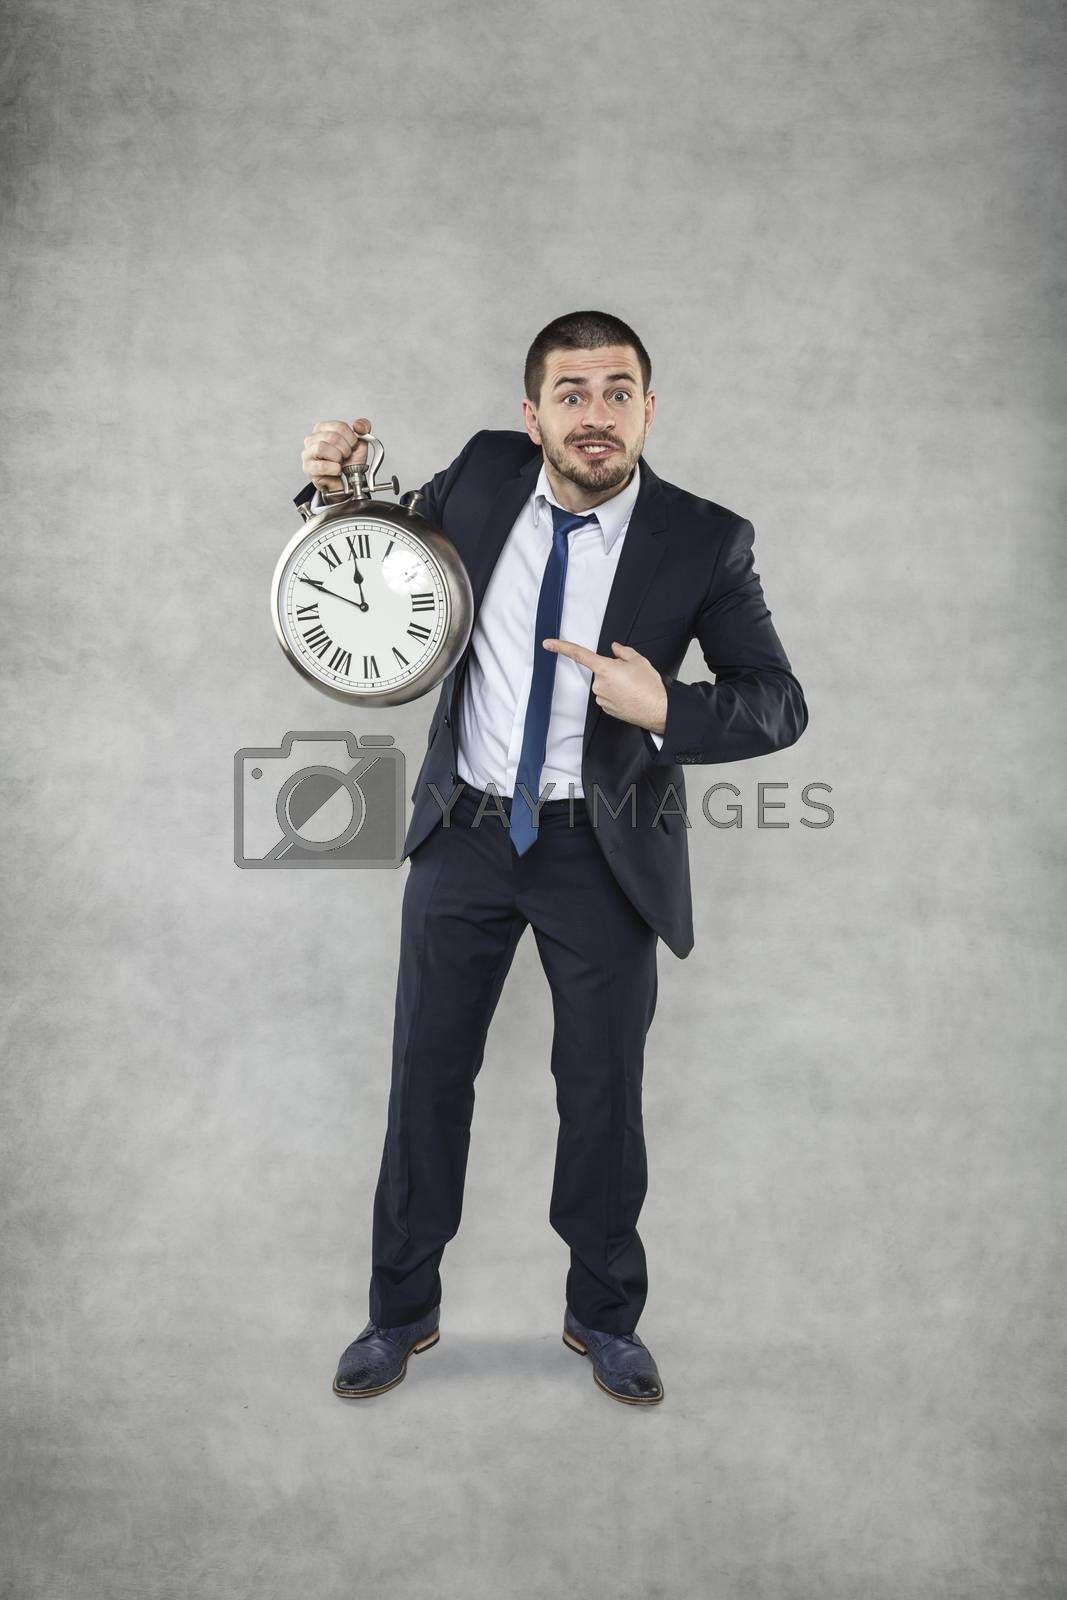 Do not be late